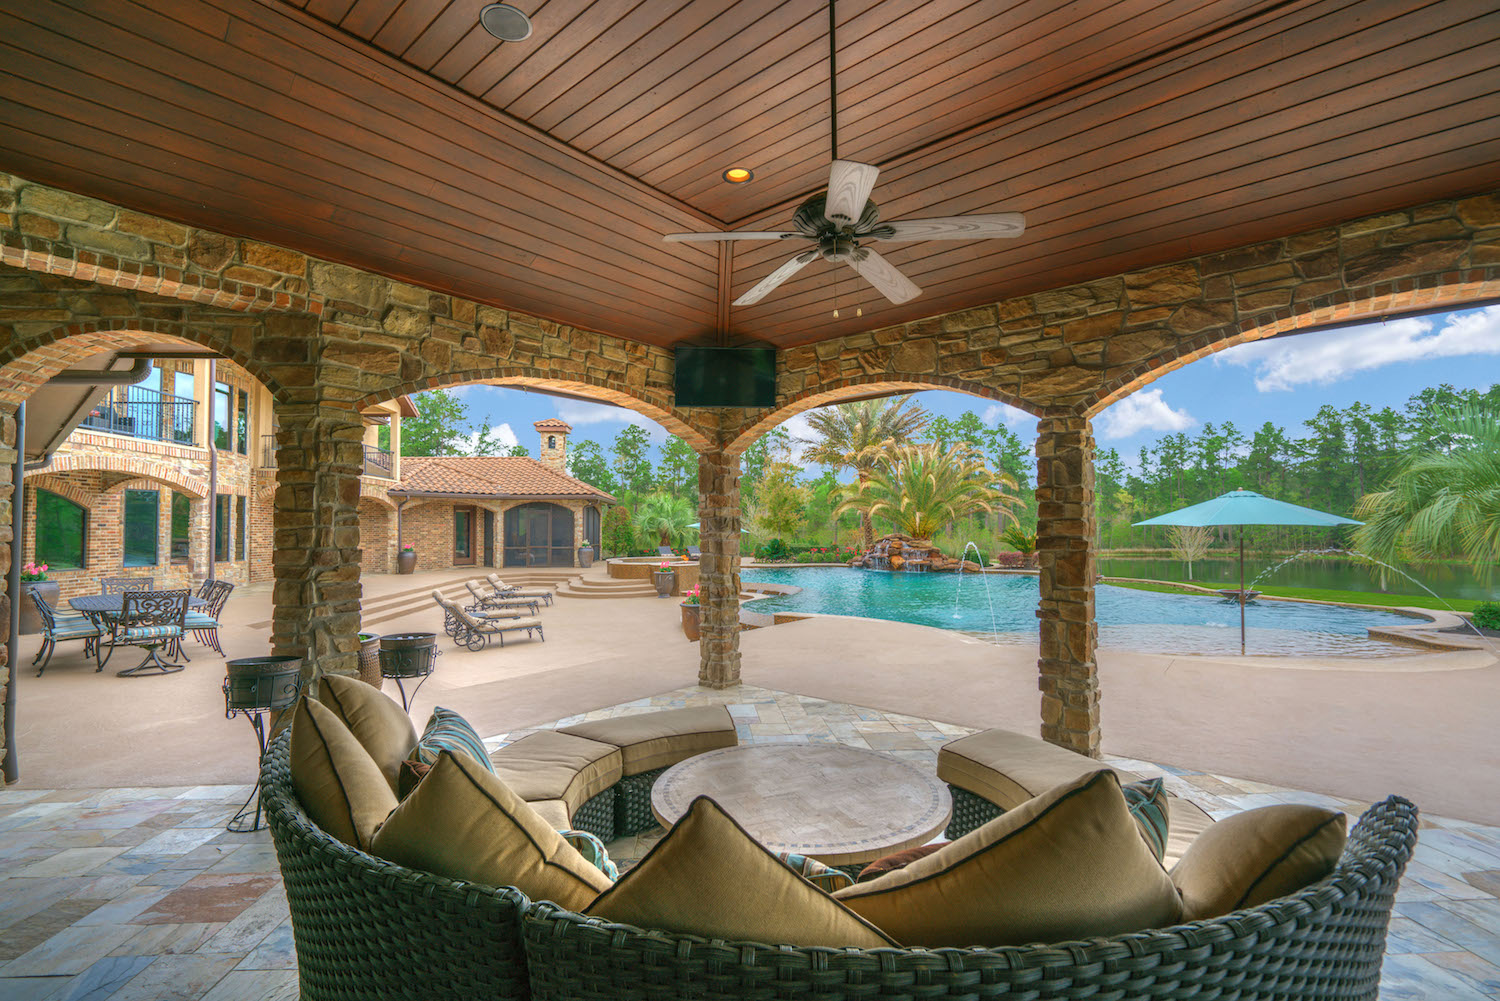 Top Tips To Buy Luxury Property With Land In Texas The